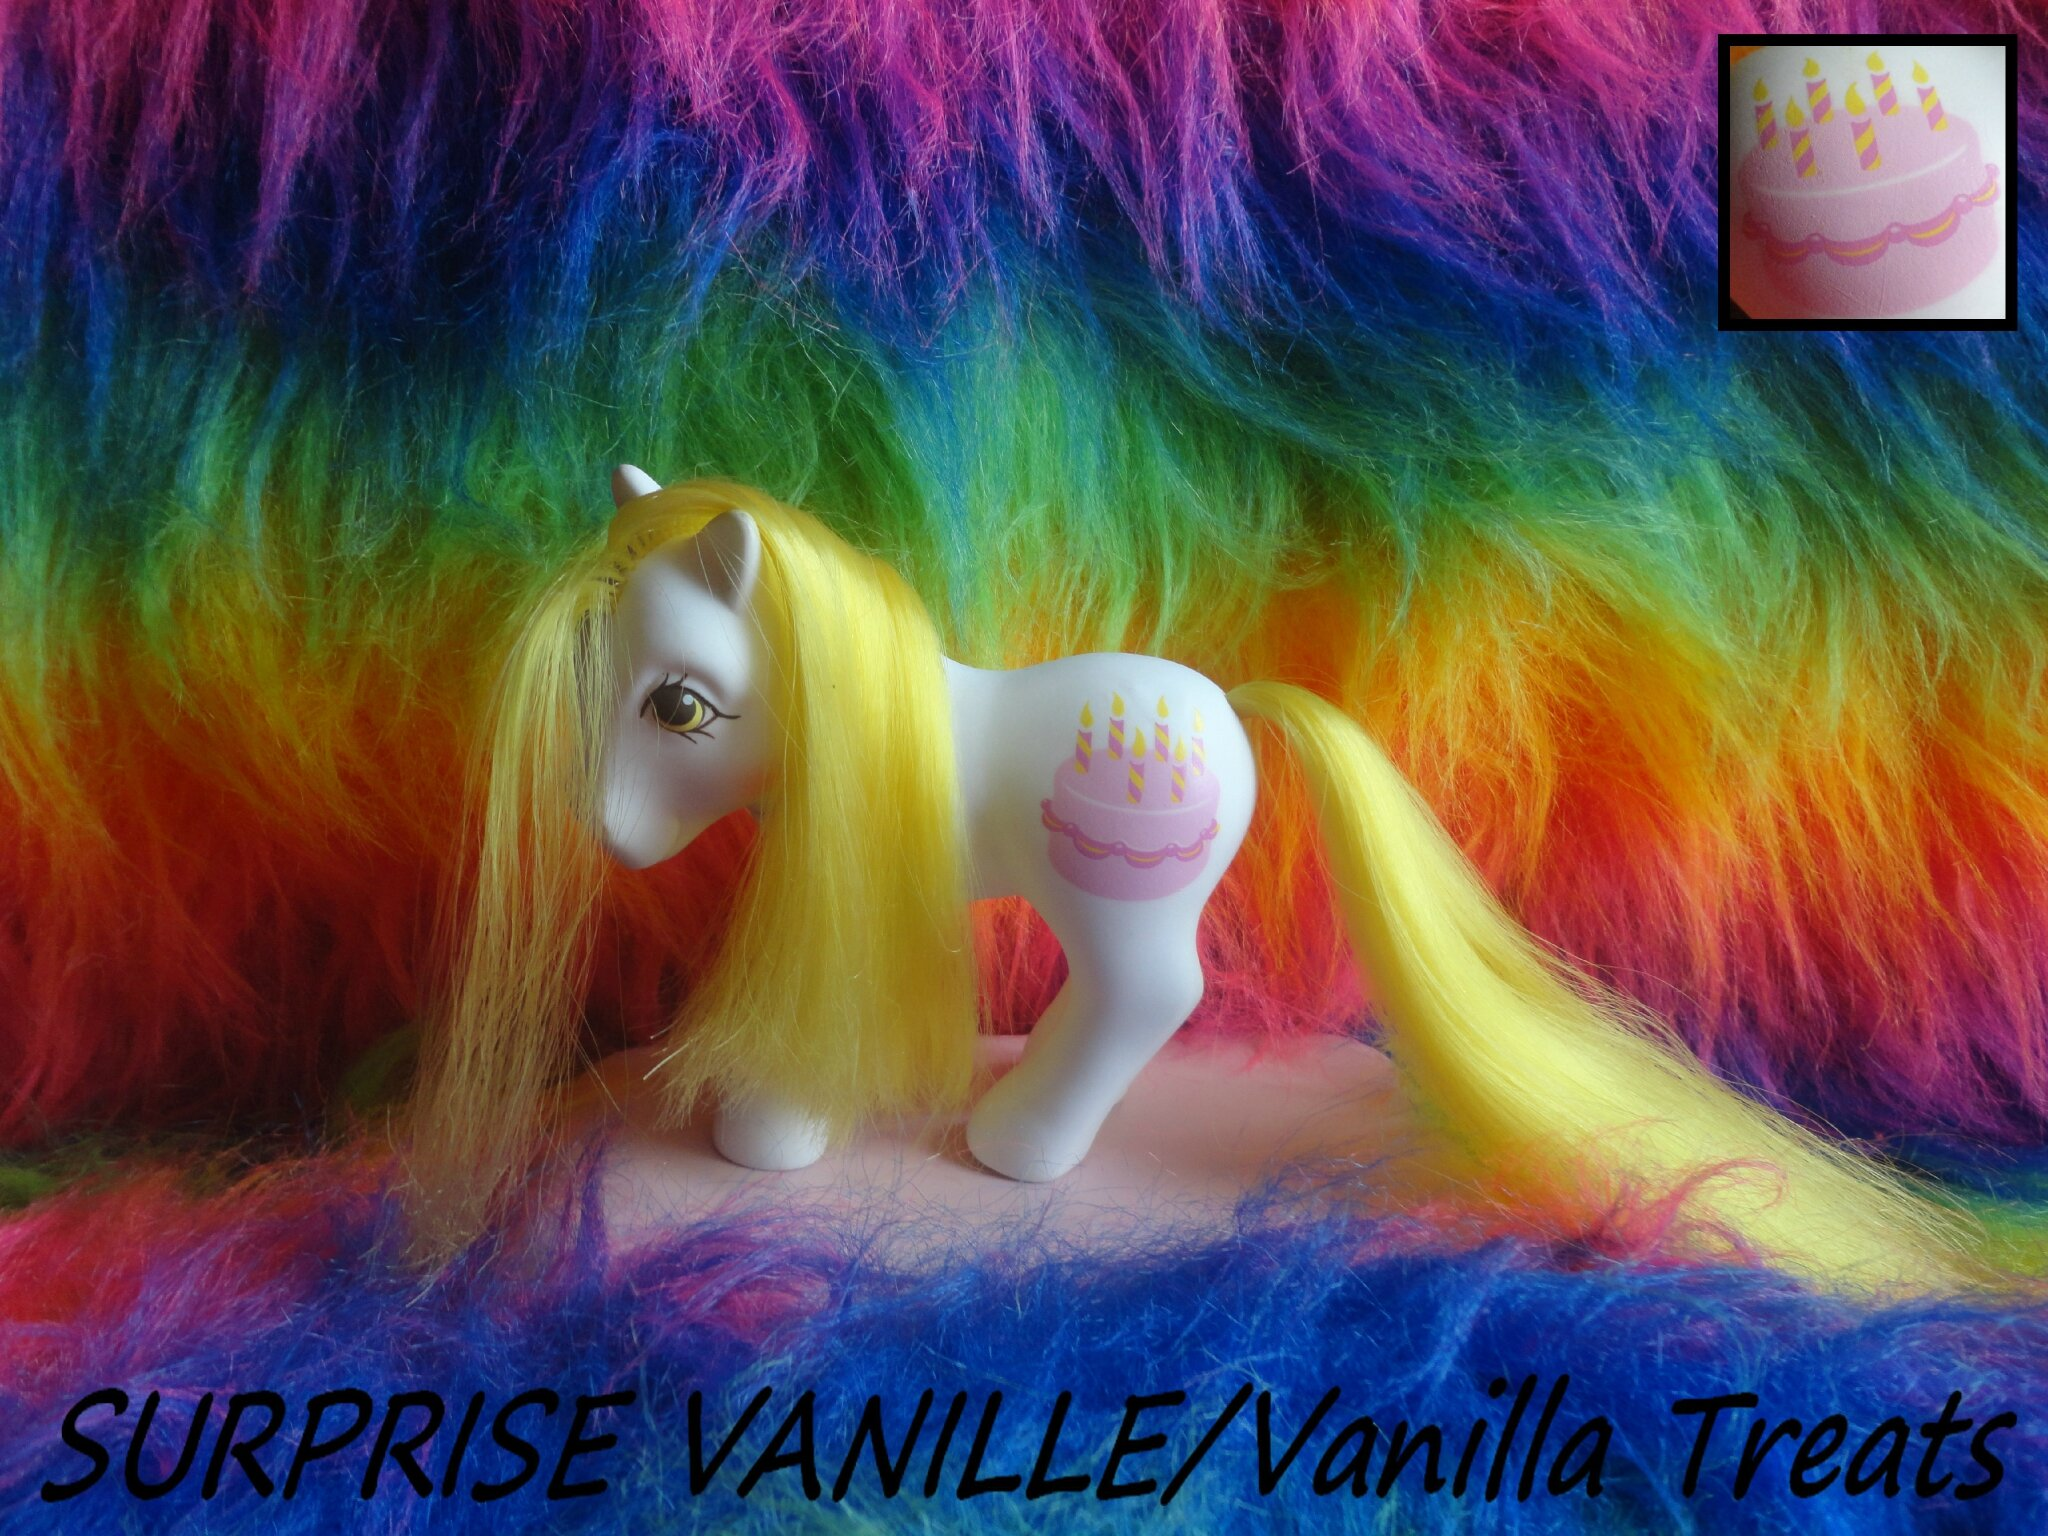 SURPRISE VANILLE (Vanilla Treats)